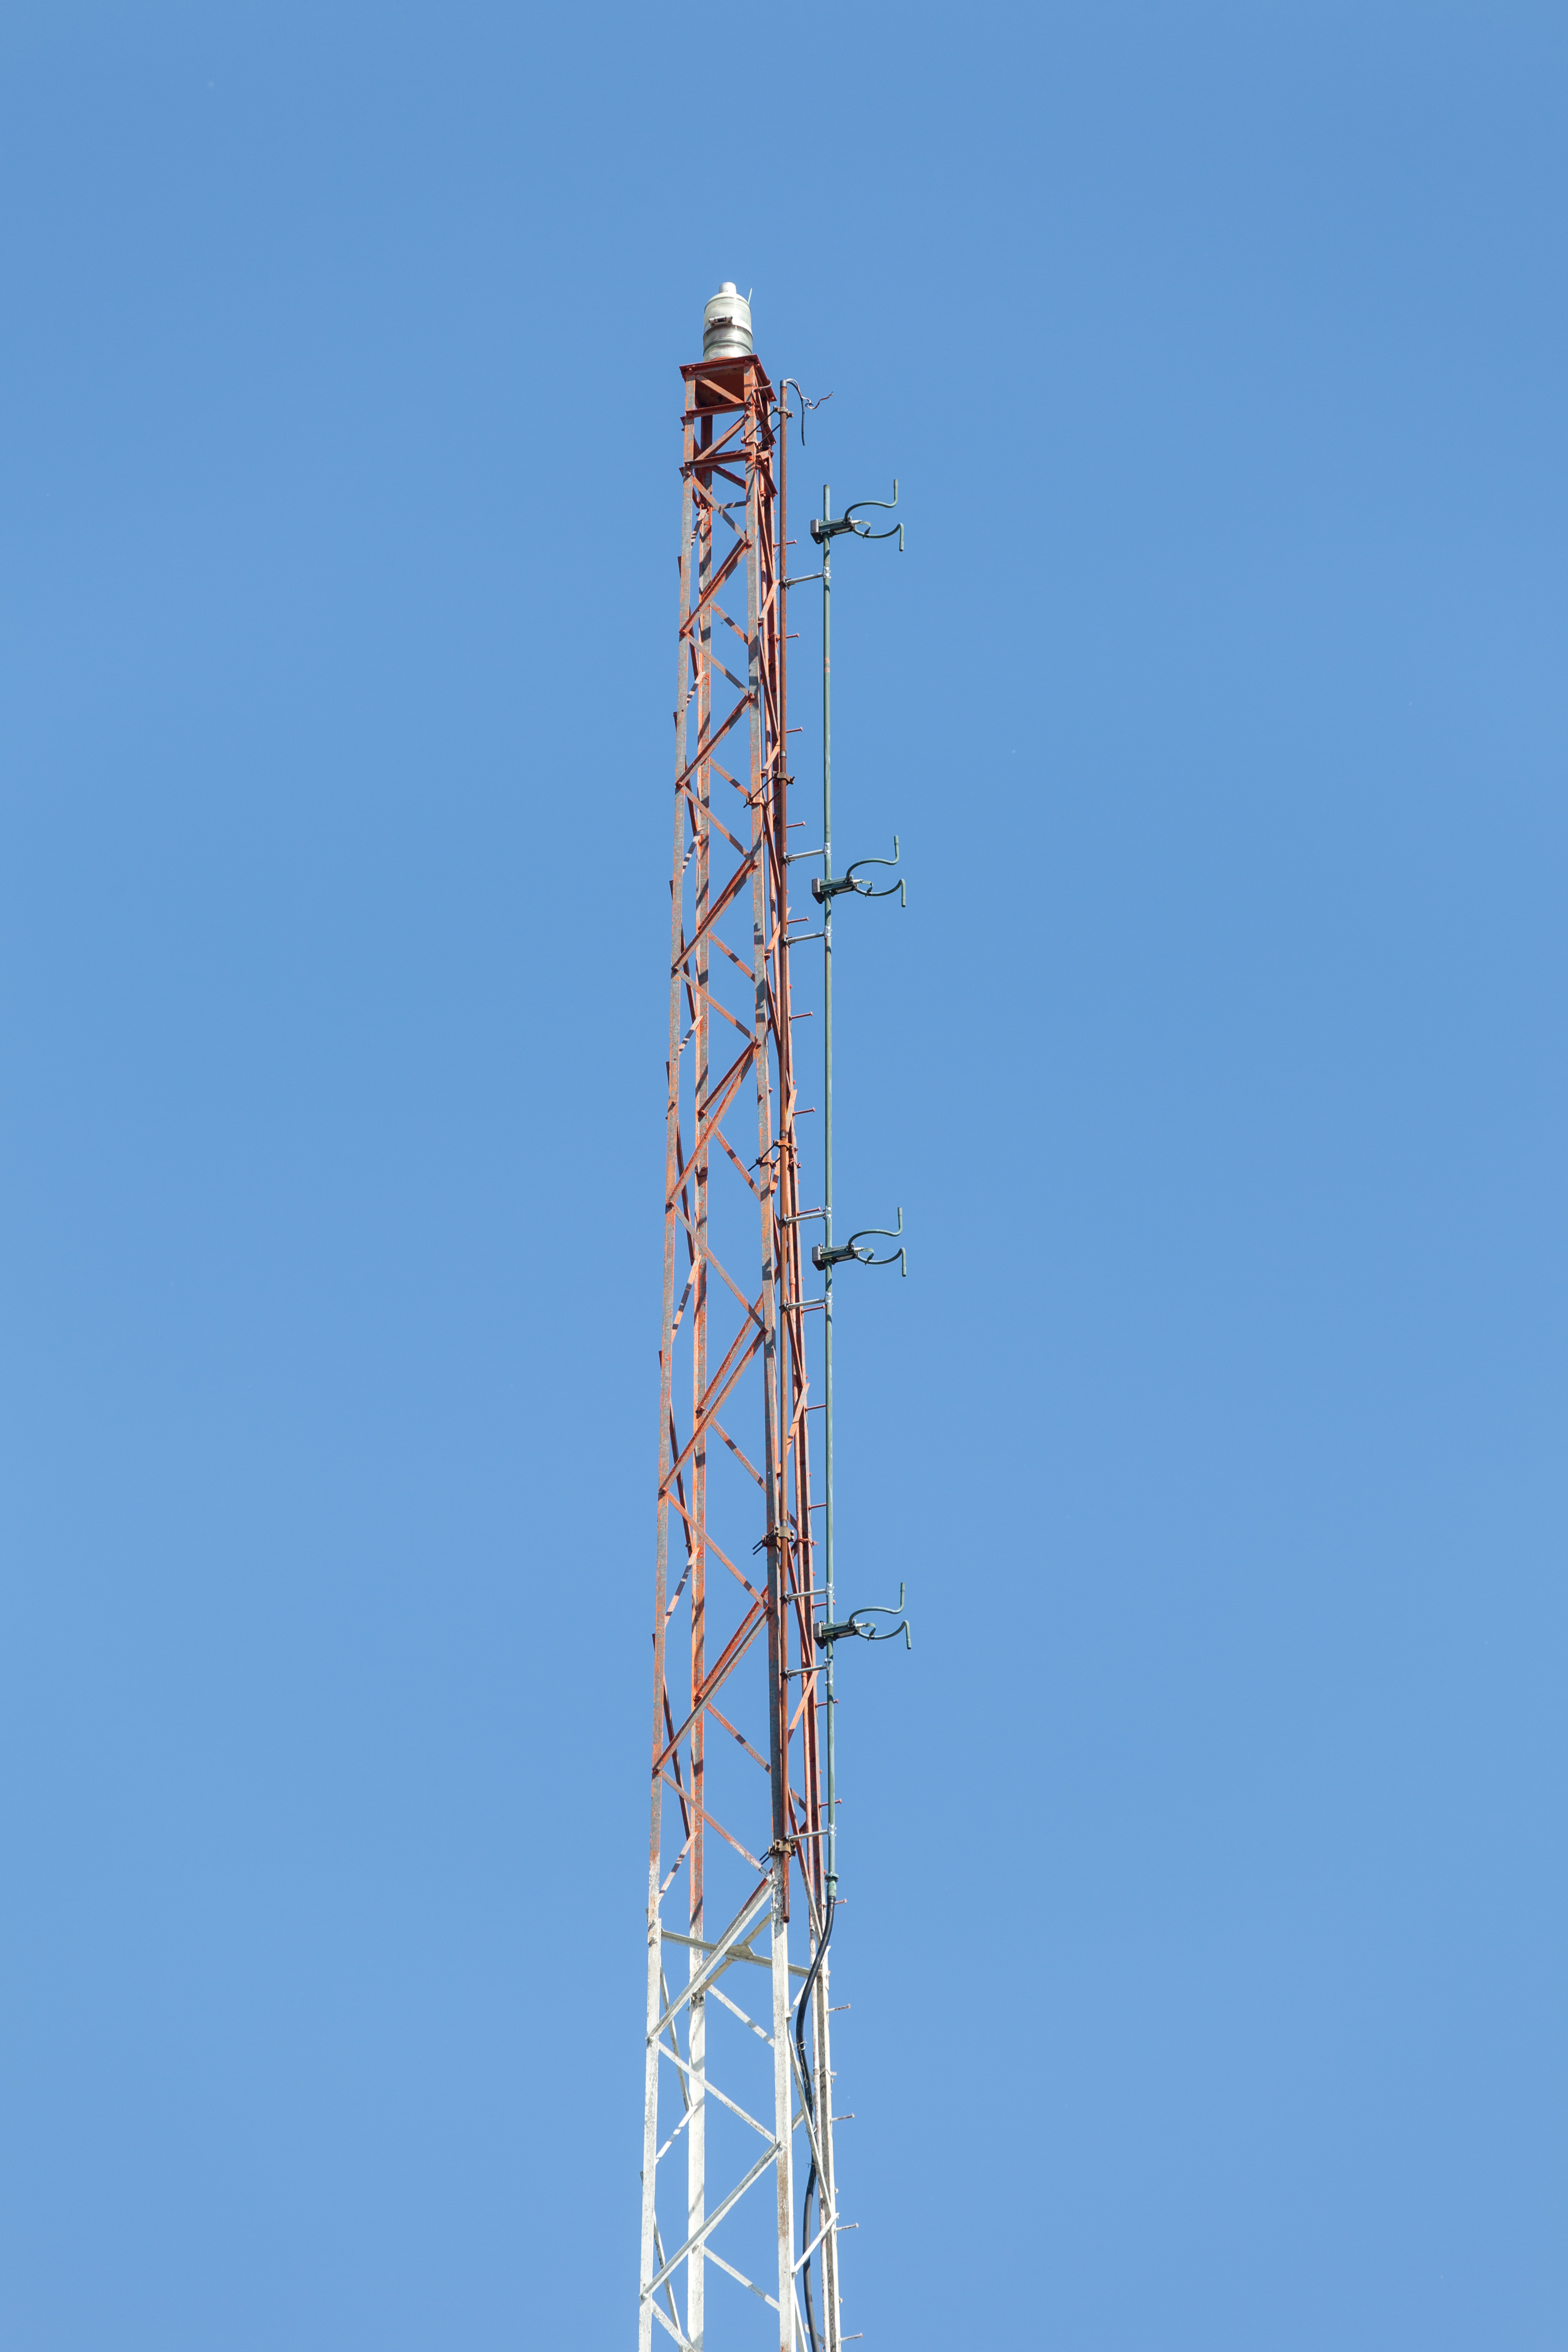 am fm tv with File Wmmn Wgye Tower Fm Antenna on Super Size Me Star Morgan Spurlock Opening Fast Food Restaurant moreover List of television and radio stations in Iloilo City furthermore Sony 20STR DE225 additionally View 1988 Georgie Boy Photo Details Lmxv also Sony 20STR GX315.